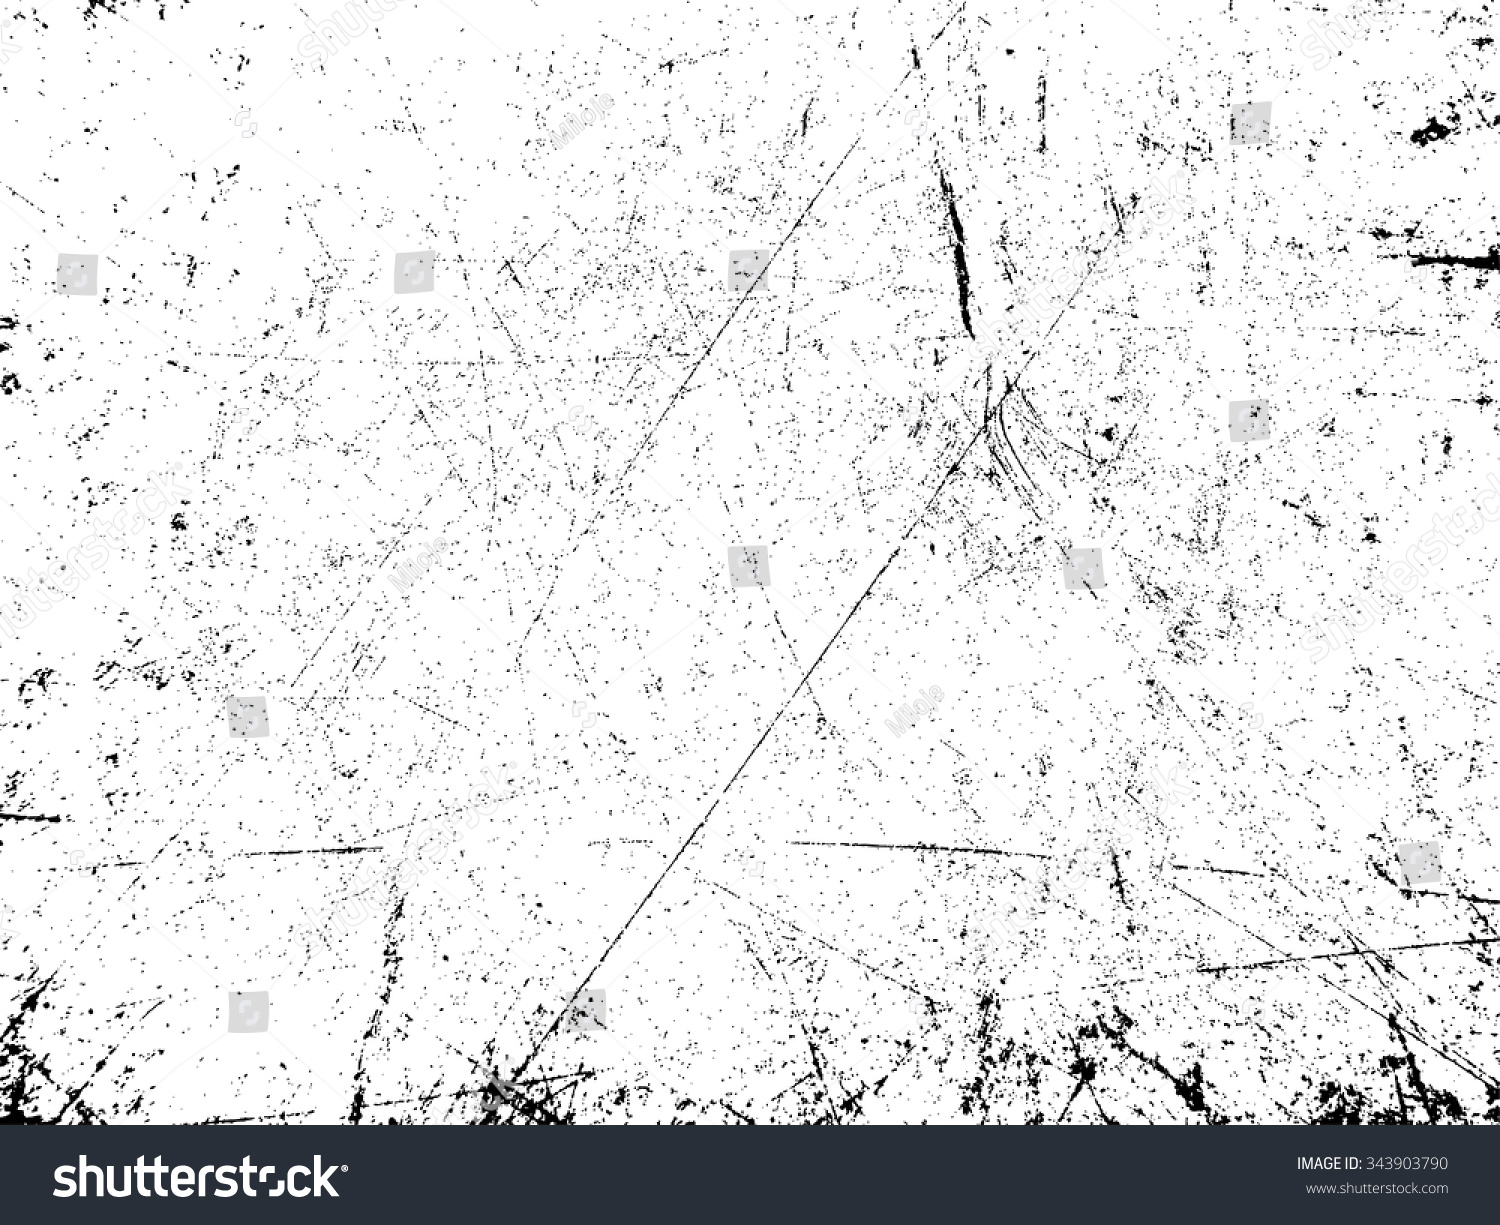 Scratch Texture Vector | www.imgkid.com - The Image Kid ...